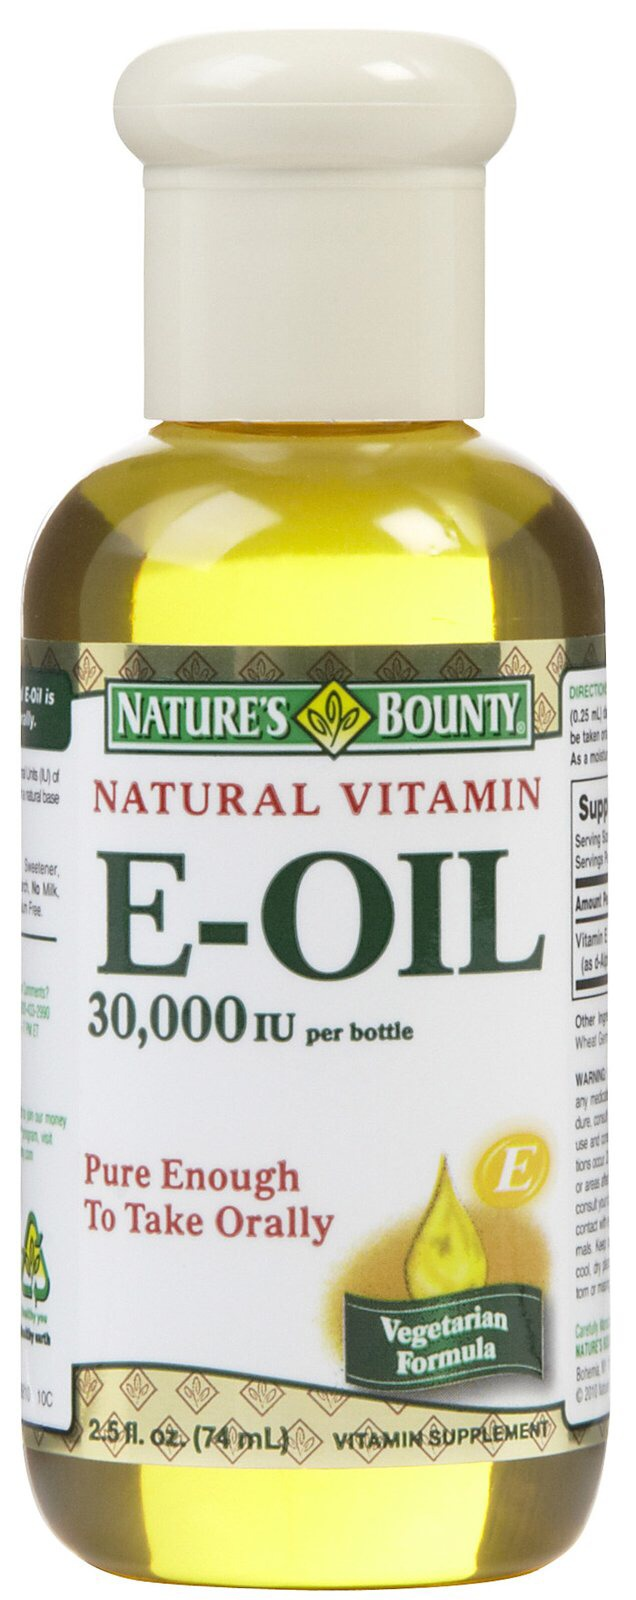 All you need is vitamin E oil. Vitamin E oil helps your skin, doesn't not take but two drops to soak your finger. Put a drop around the ring and rub it in around the ring area; move the ring as much as you can. rub some oil over your knuckle. The ring should come off easy and comfortably!